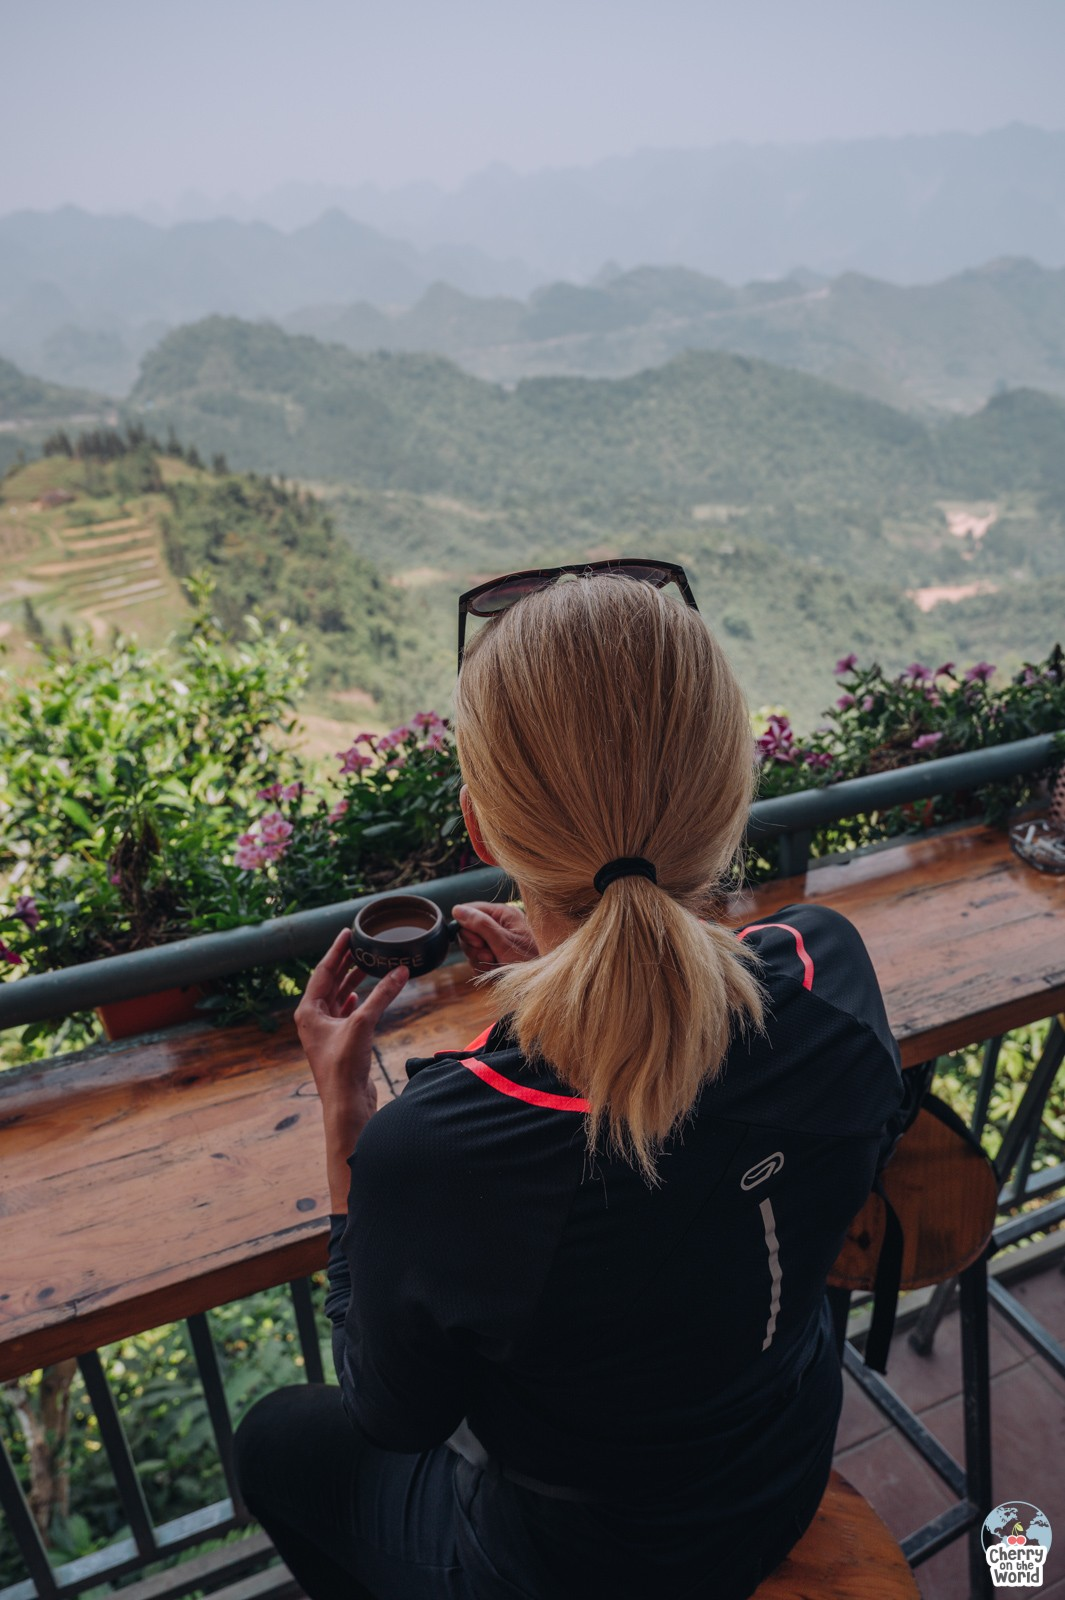 sipping coffee on a terrace with a beautiful view in Vietnam